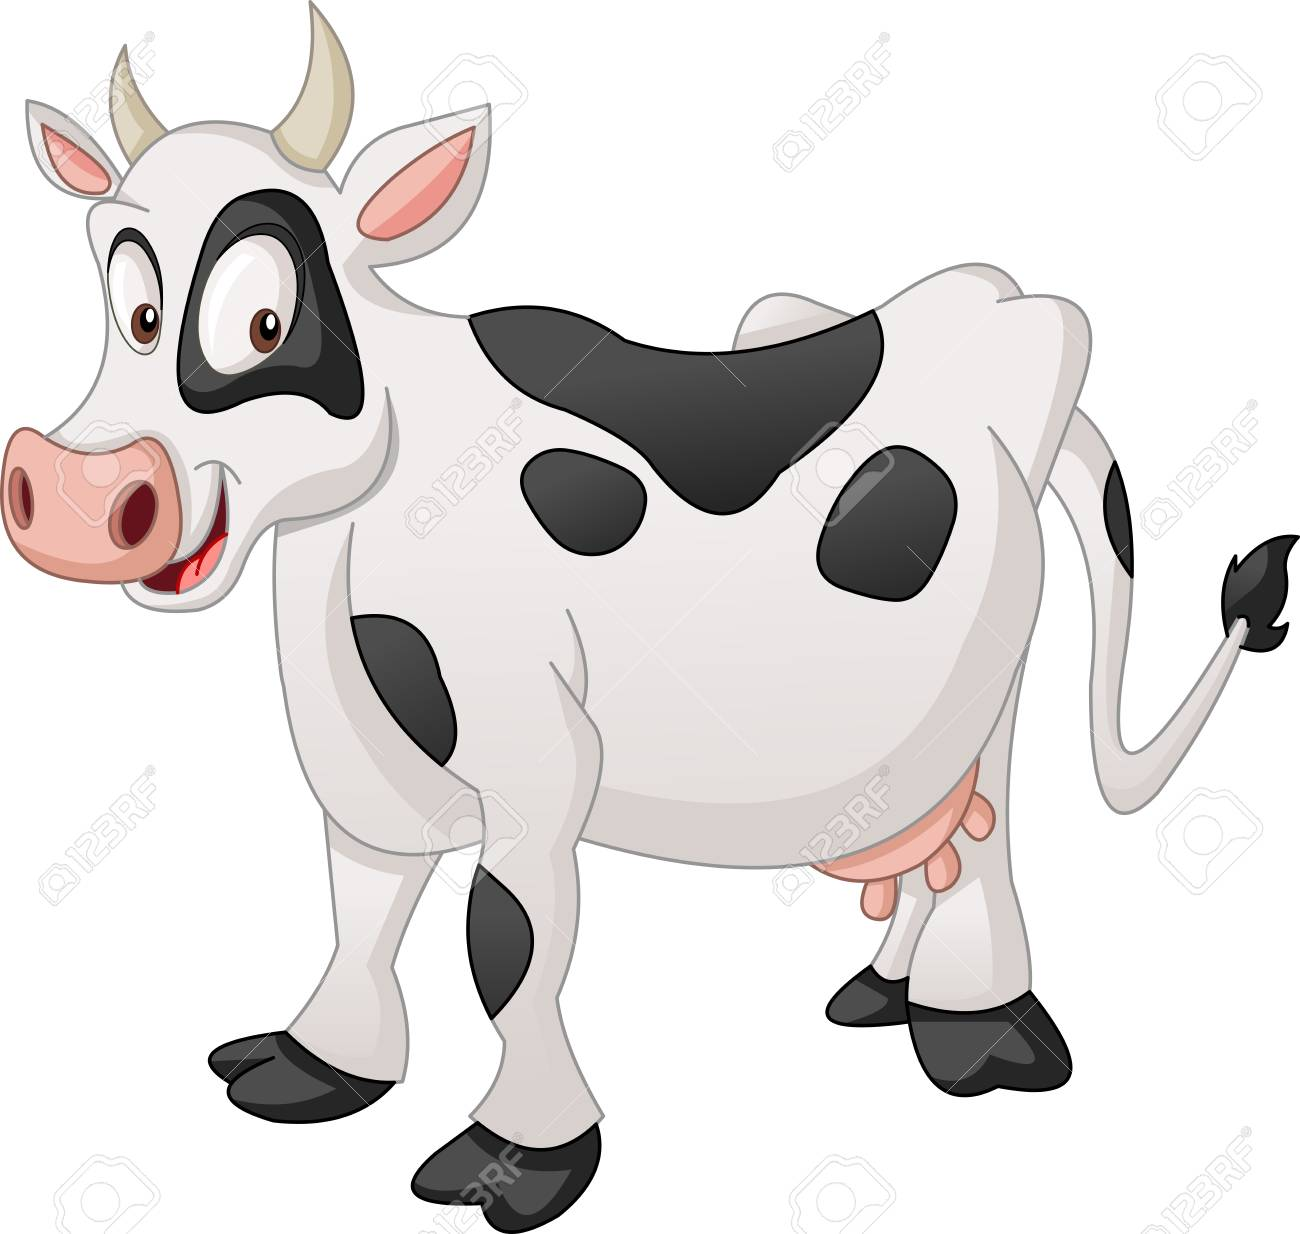 ᐈ Cartoon caw stock pictures, Royalty Free cow cartoon images   download on  Depositphotos®